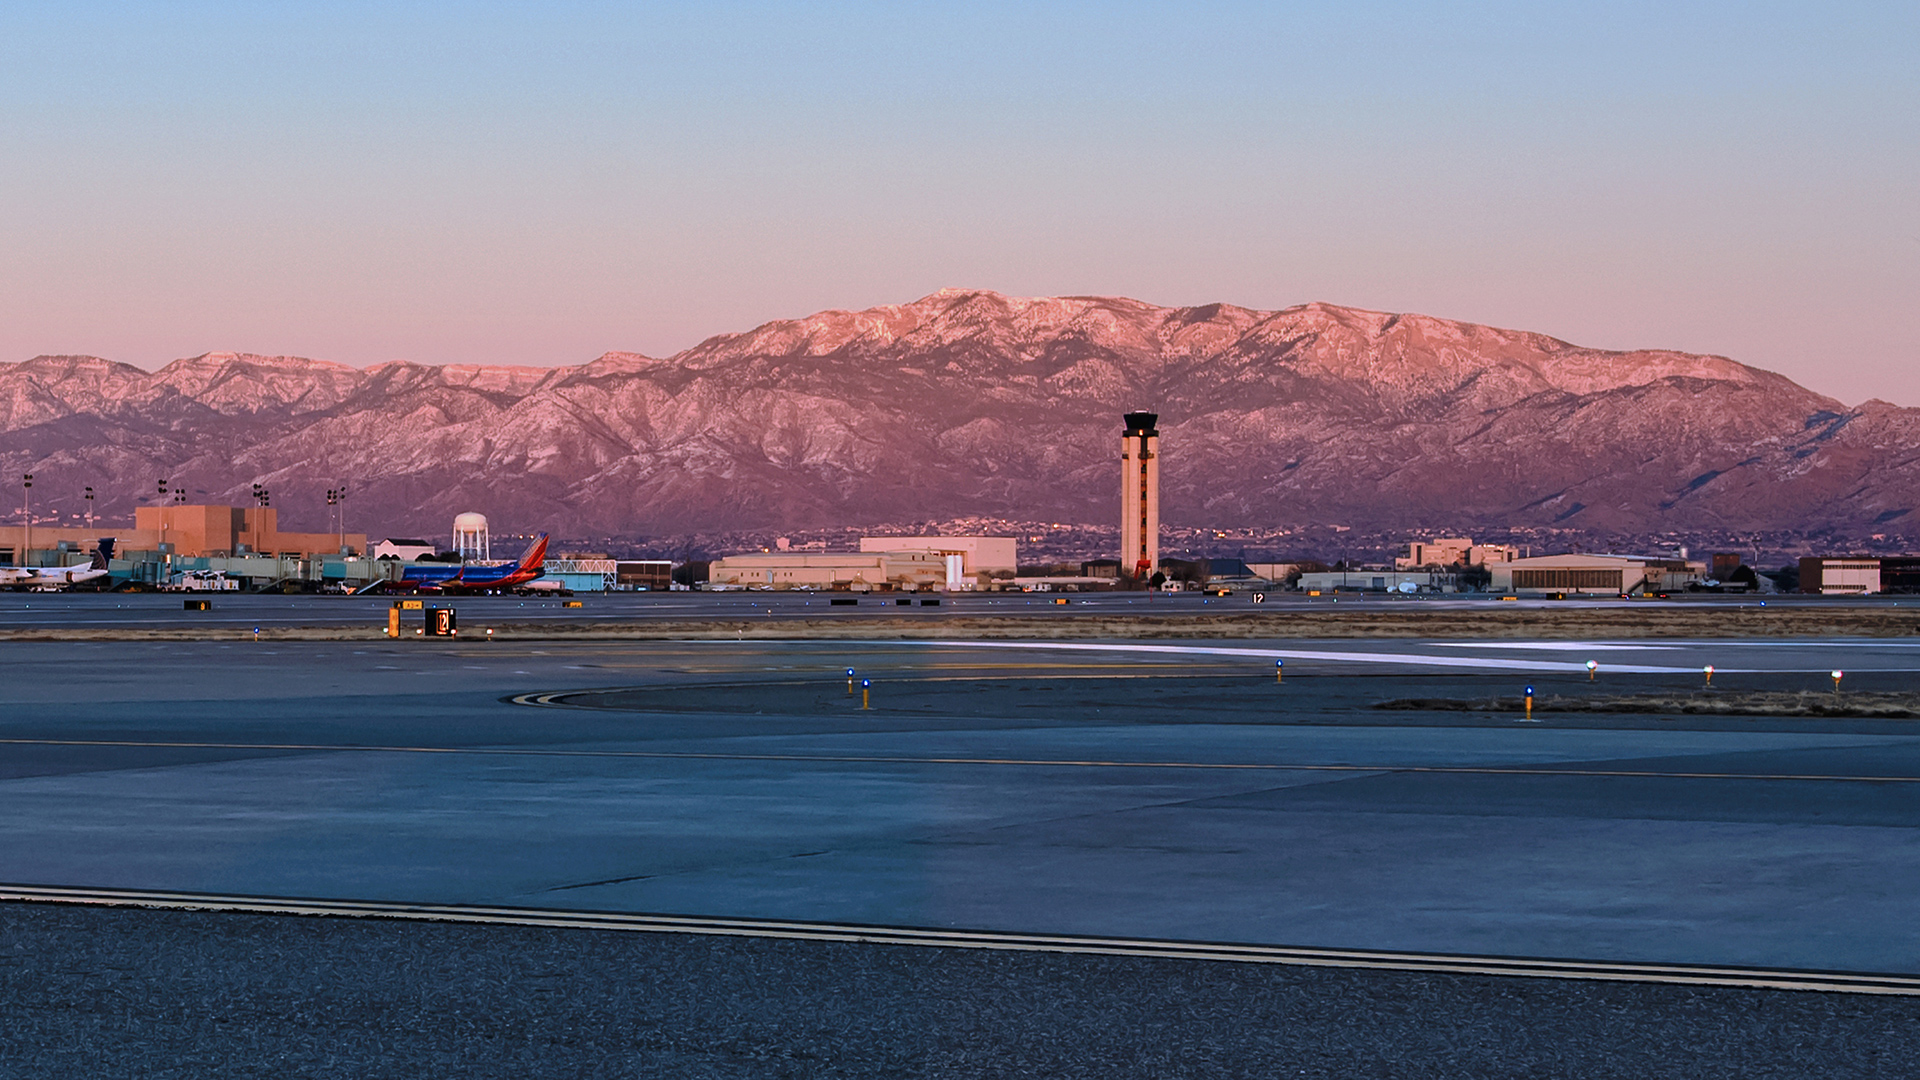 ABQ Sunport - From Airfield - Panorama - Sunset